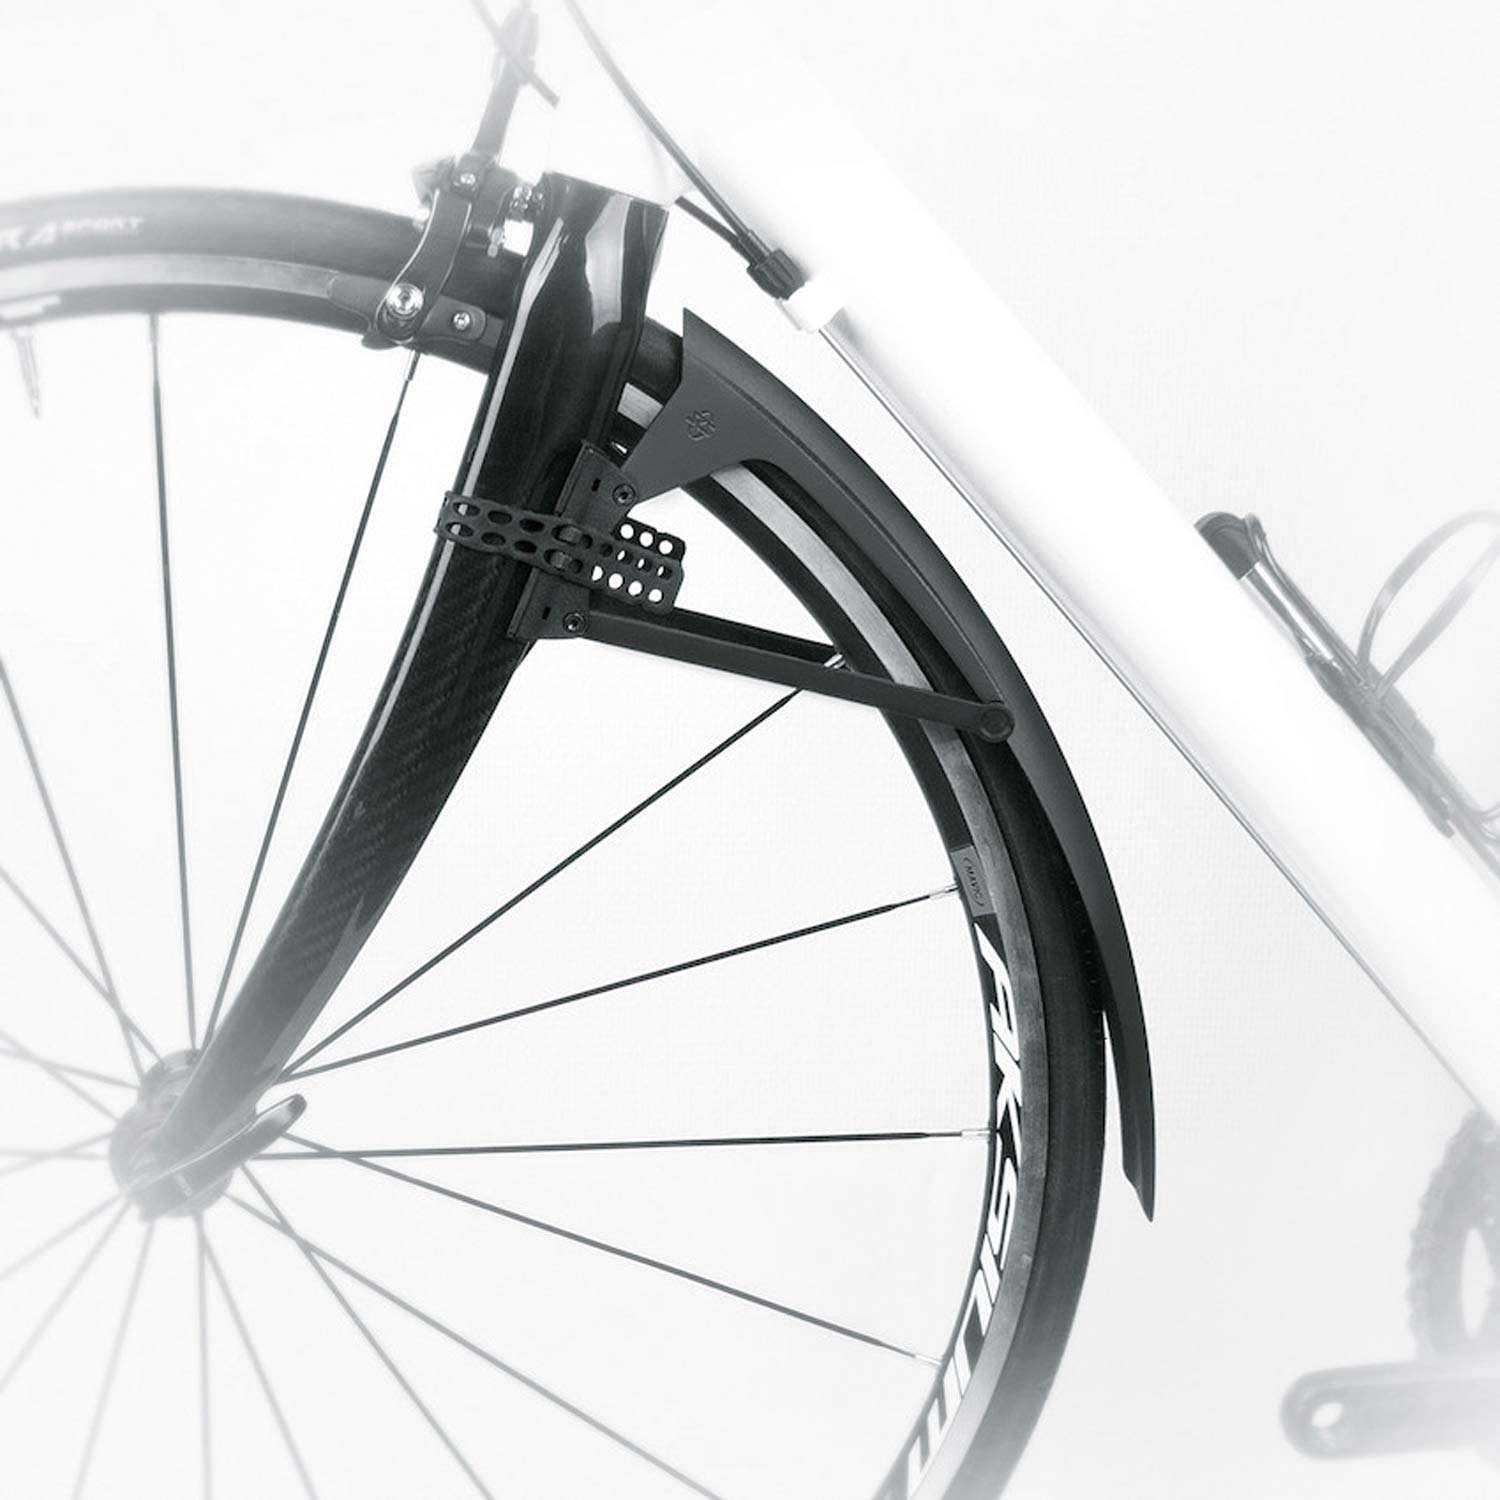 SKS-Germany 11317 S-Board Bicycle Front Fender